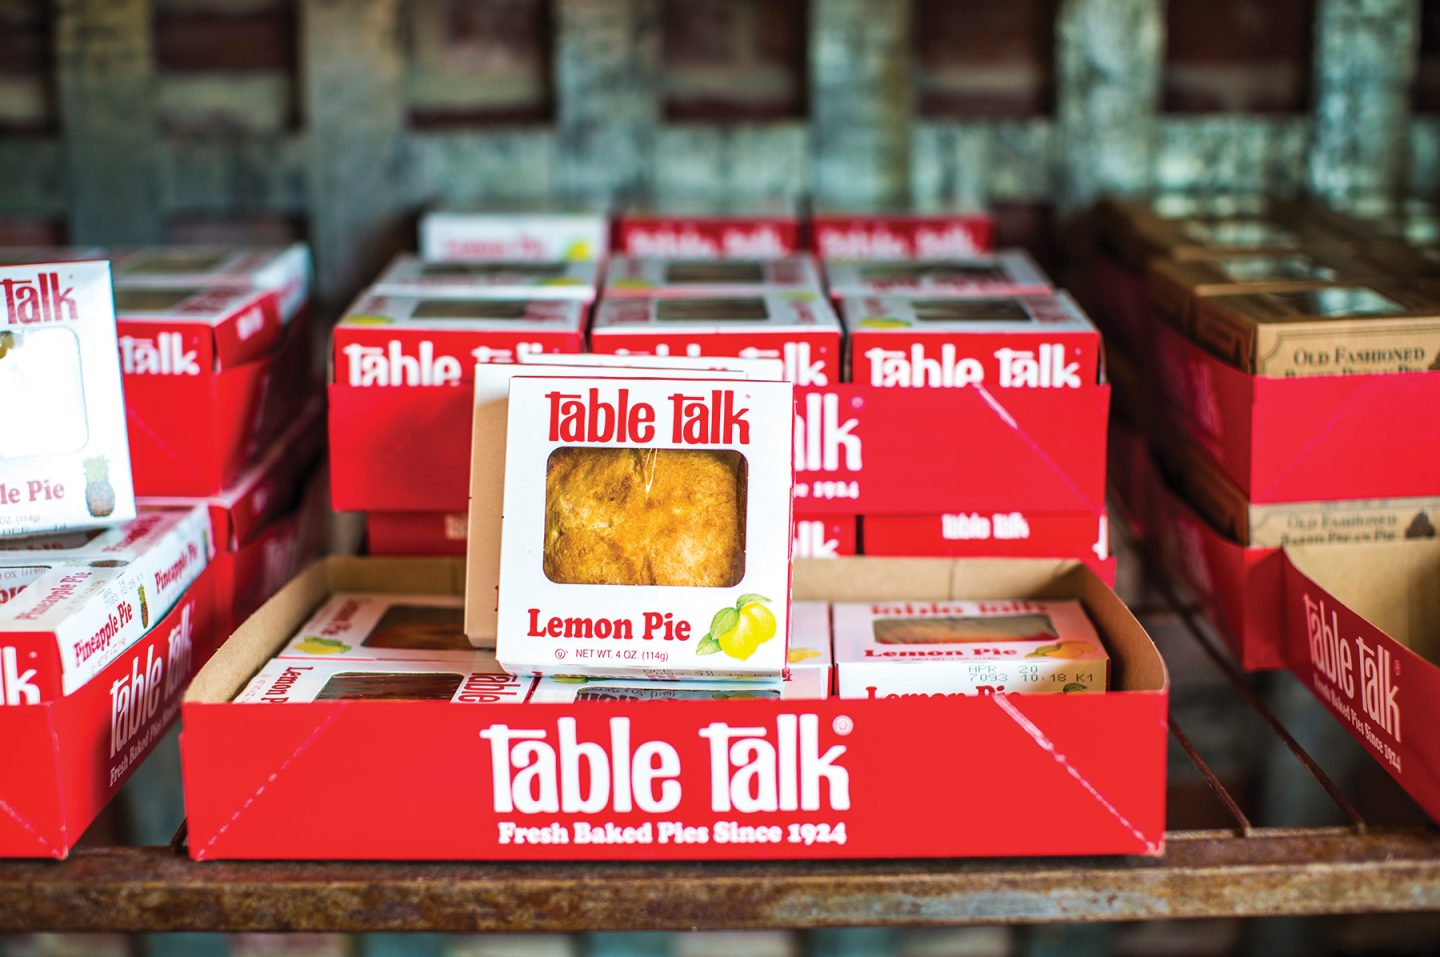 The Pie Store - Table Talk Pies